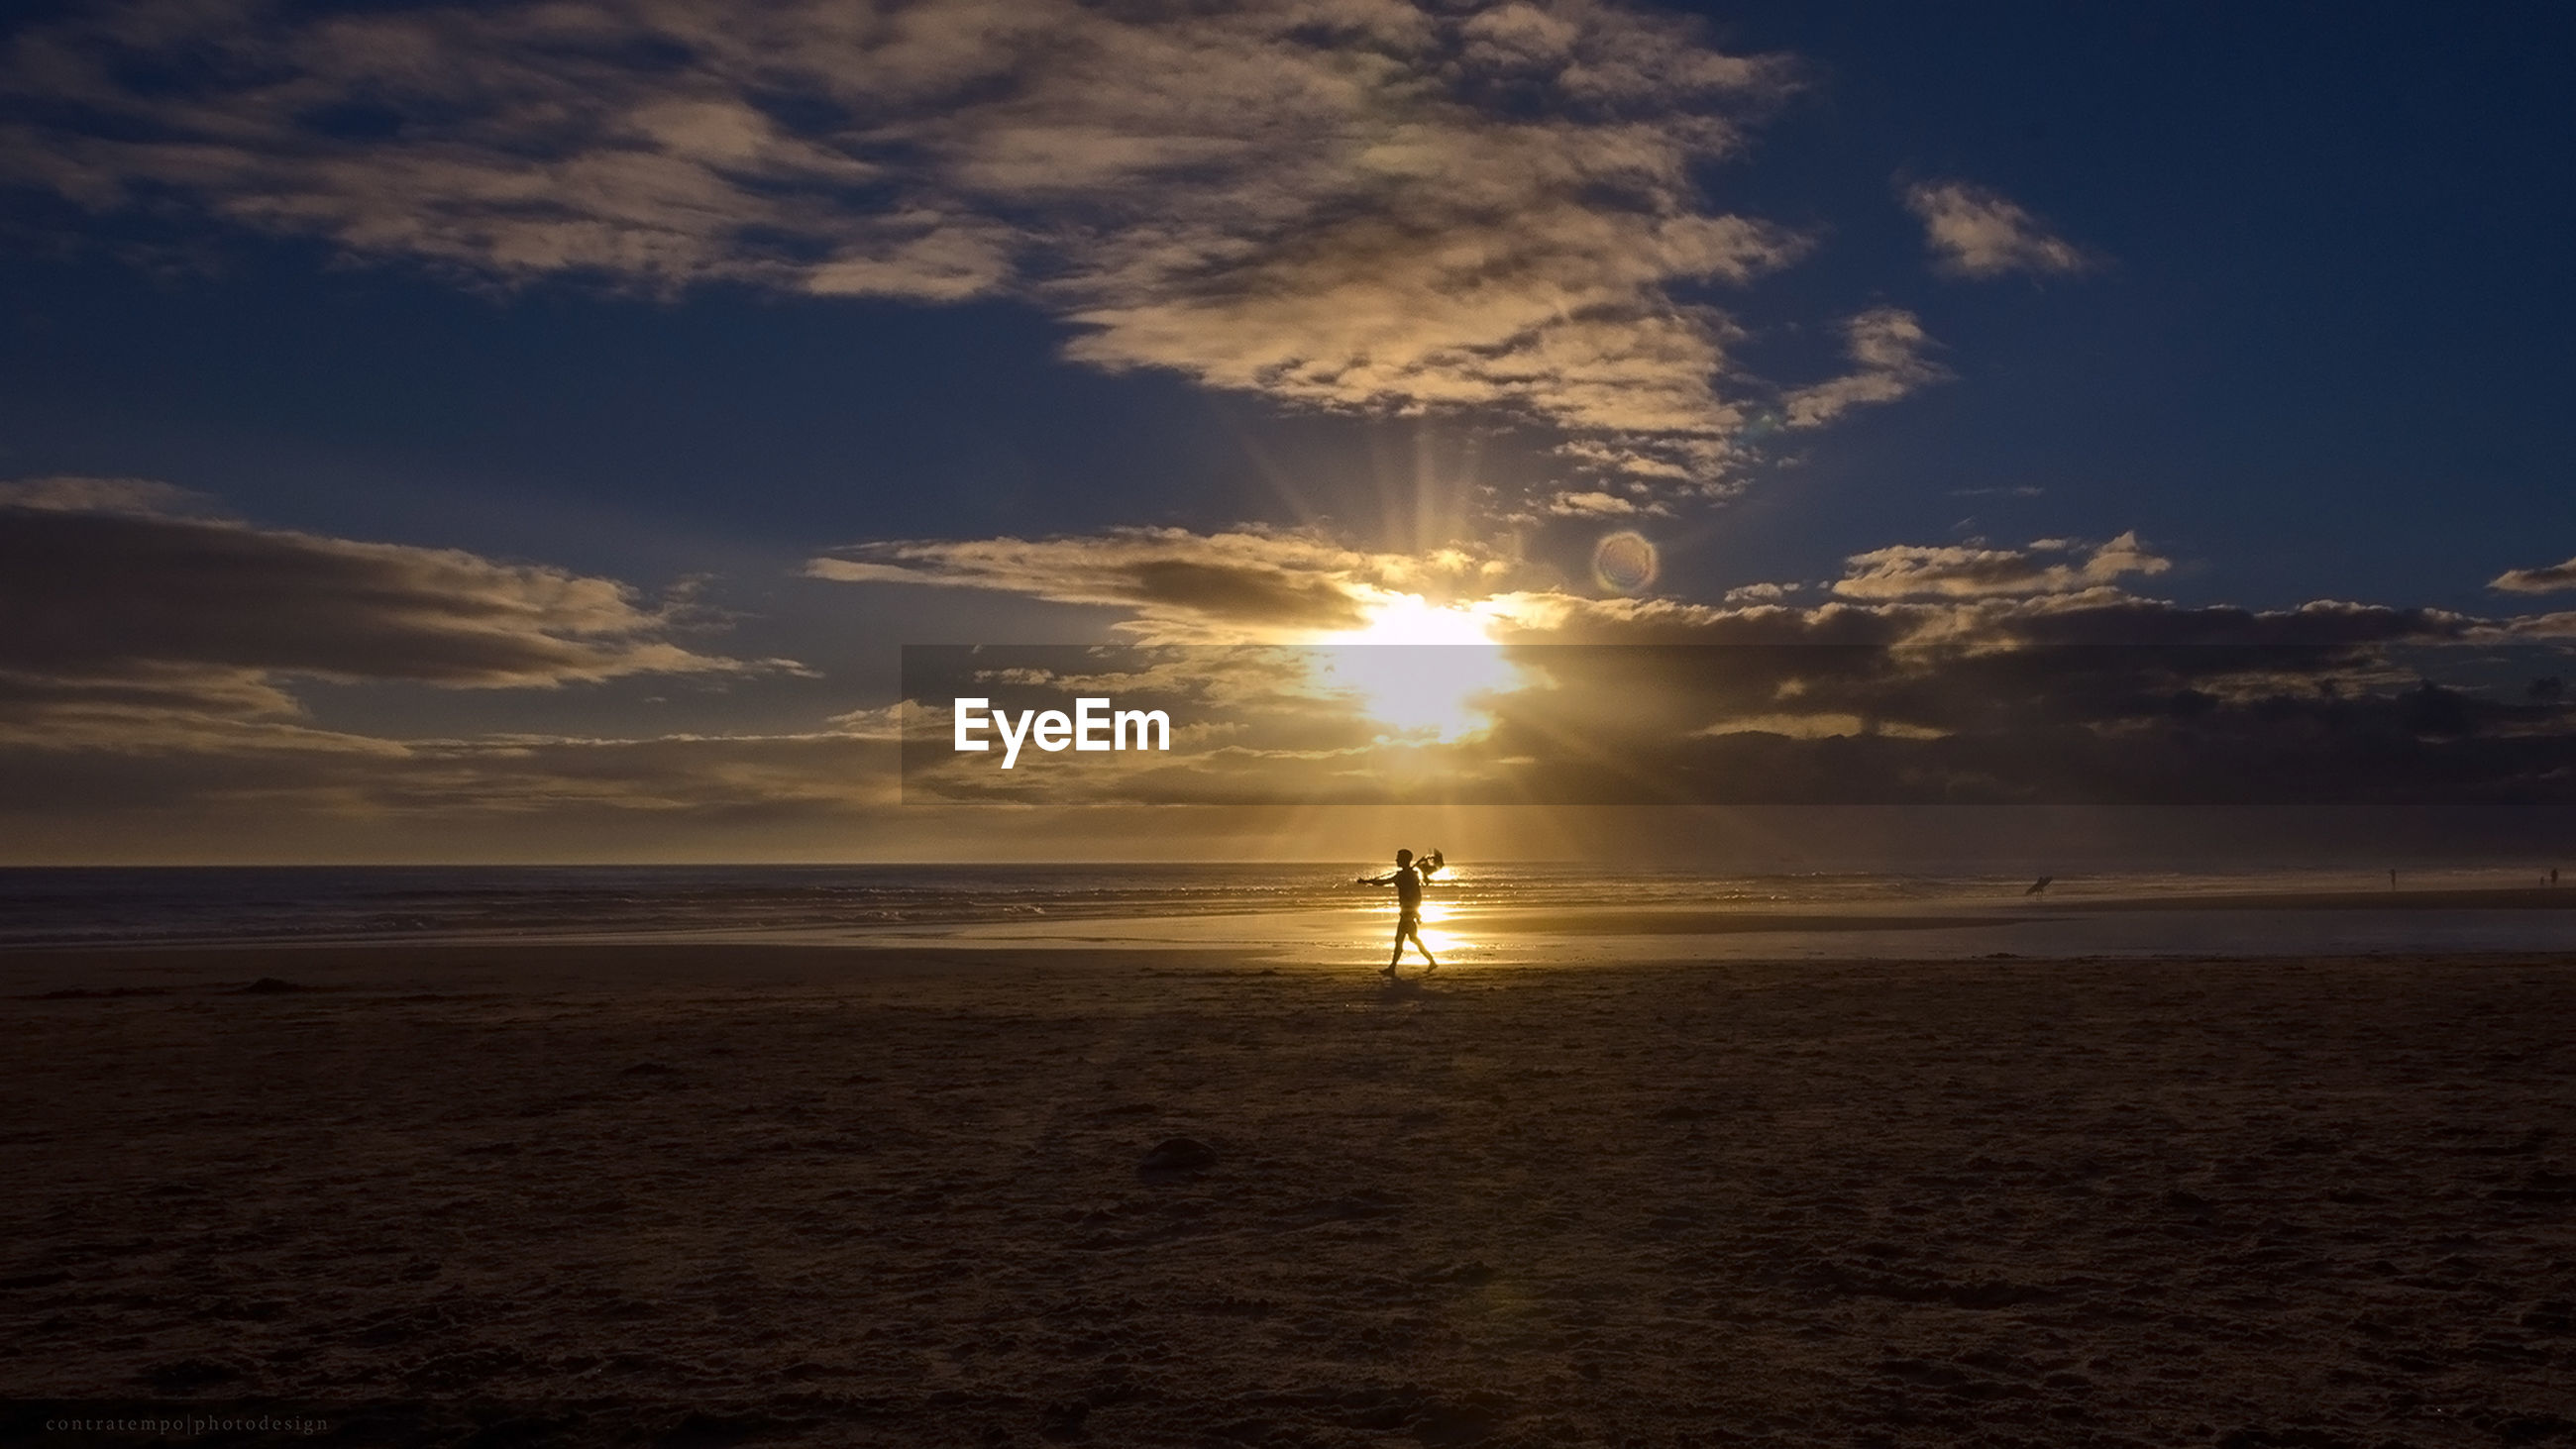 Silhouette person walking on shore at beach against sky during sunset